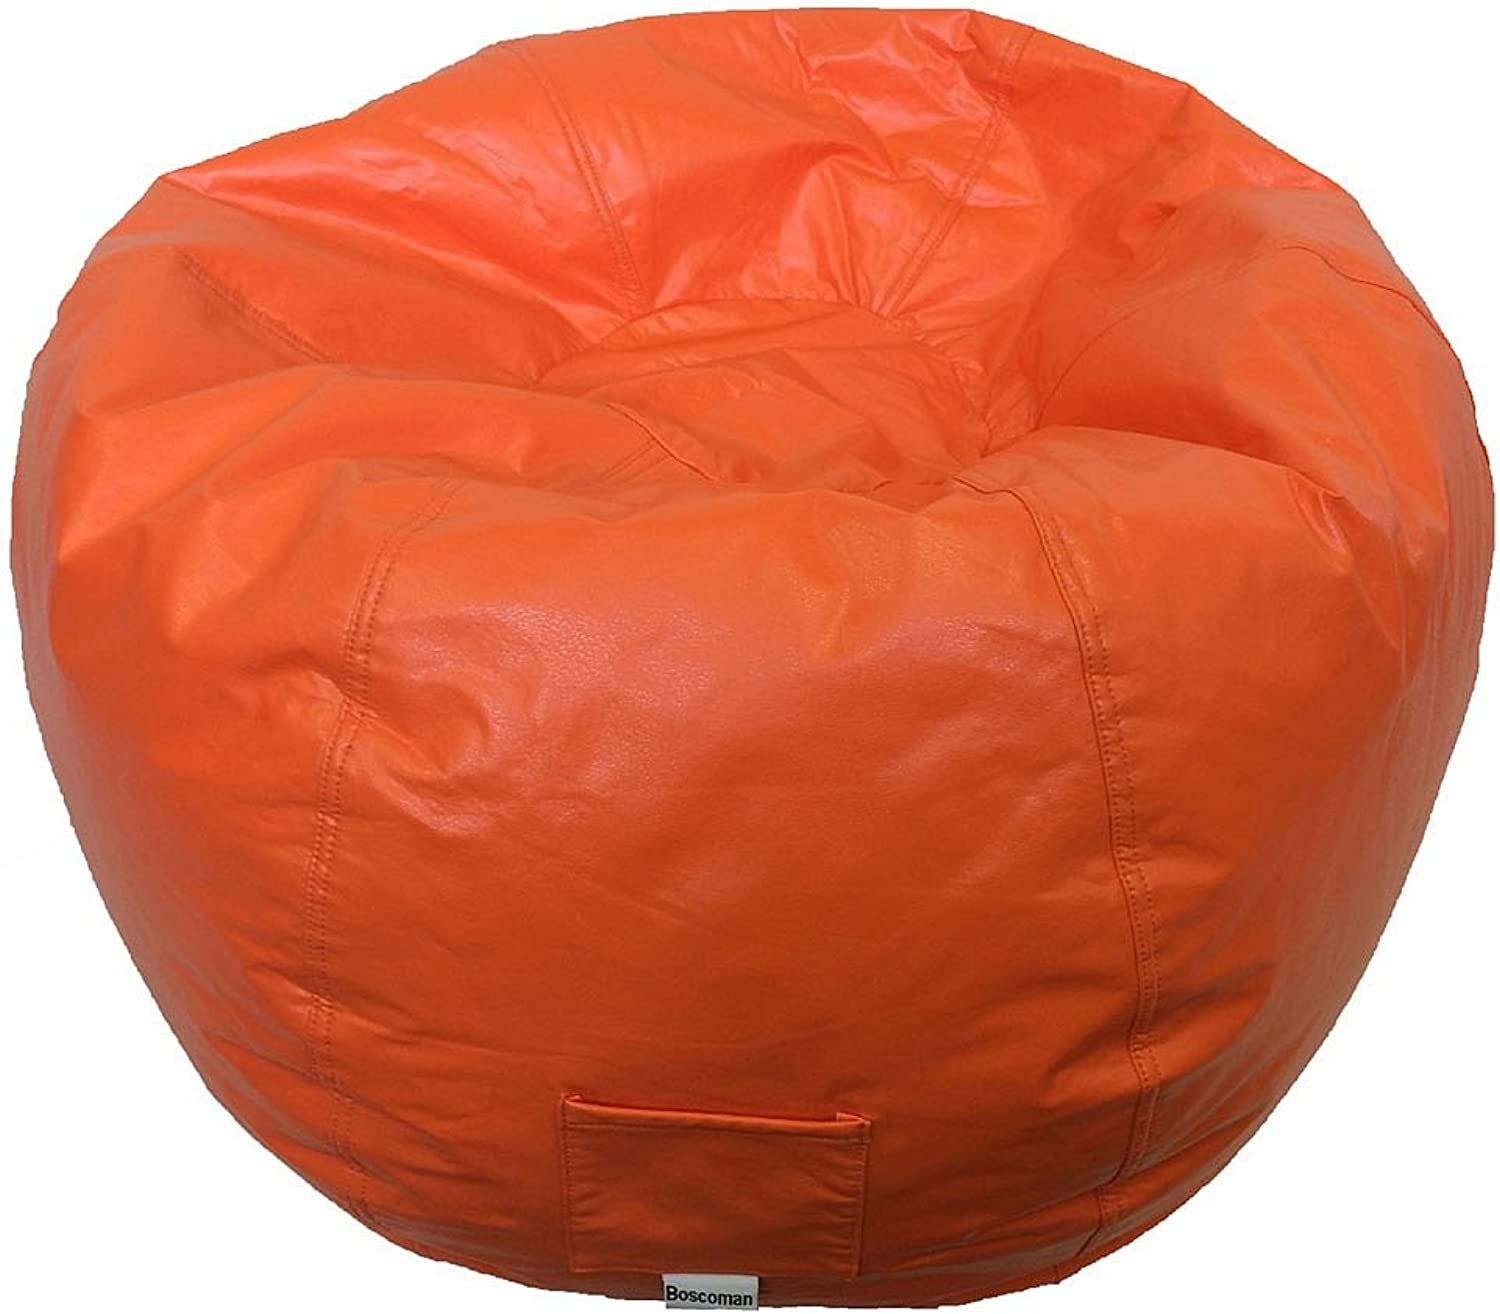 Boscoman - Adult Round Vinyl With Pocket Beanbag Chair - orange (BOX M)